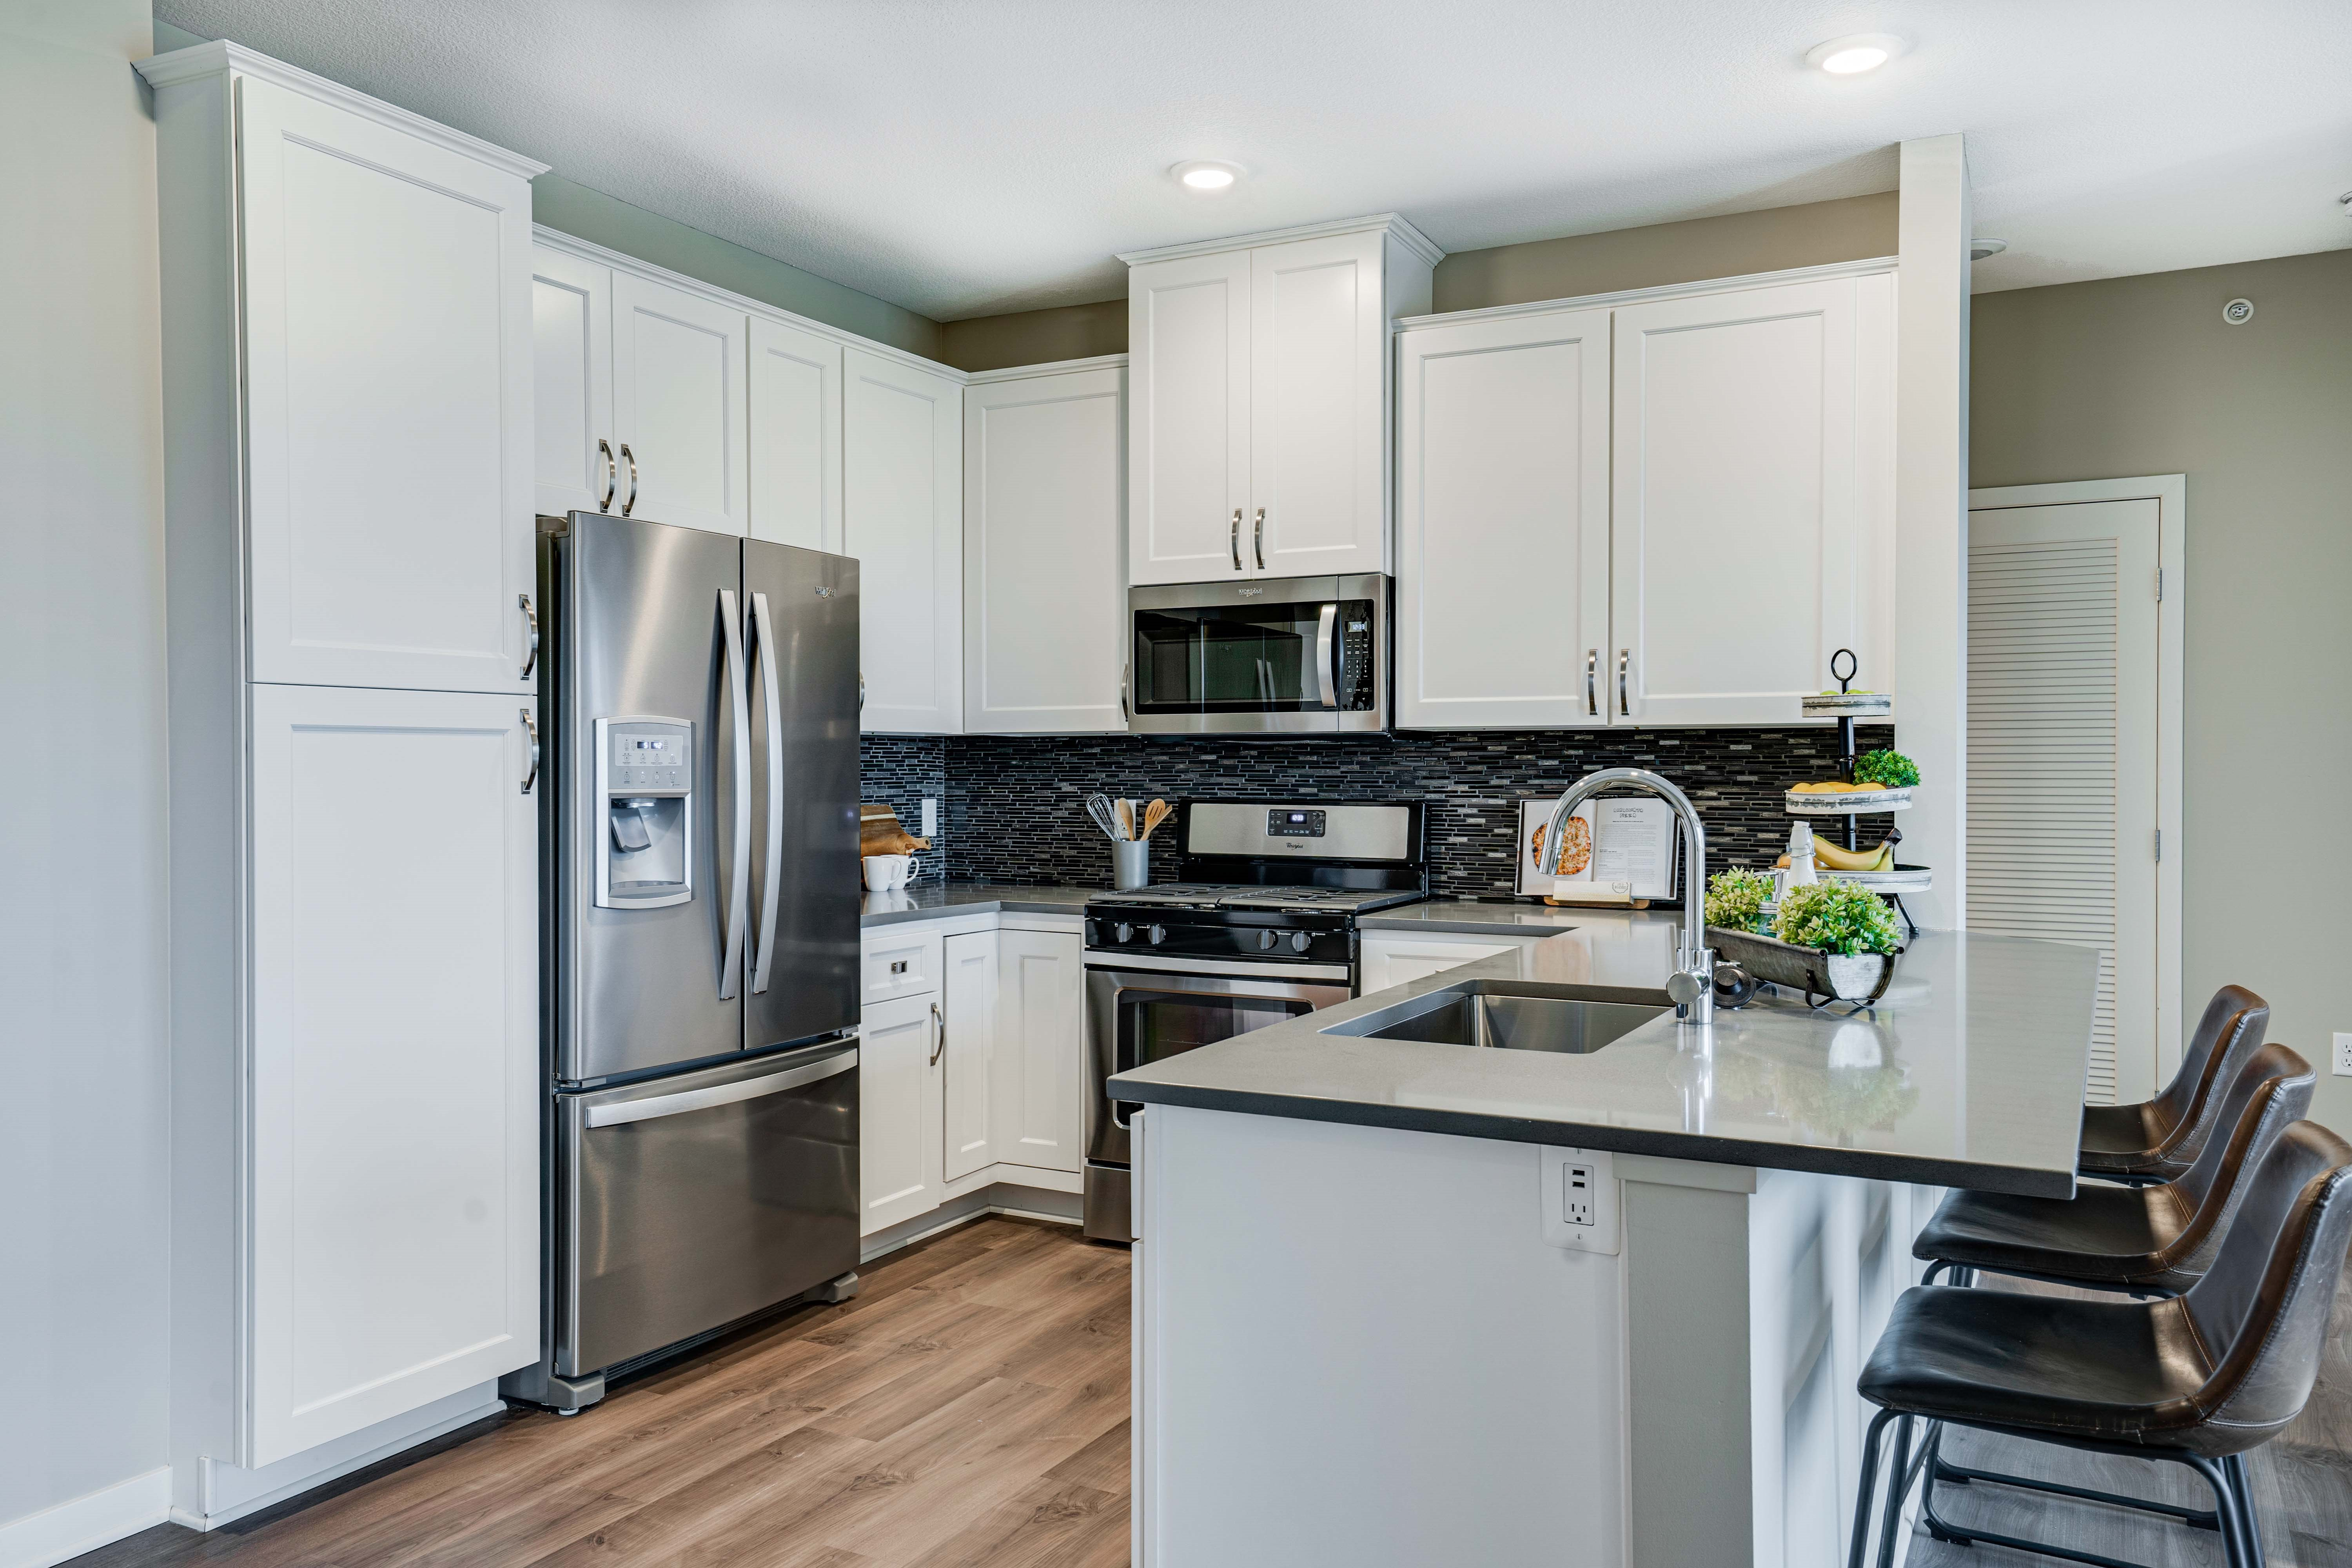 Premium kitchen featuring dark quartz countertops and white cabinetry in a two bedroom penthouse Princeton floor plan